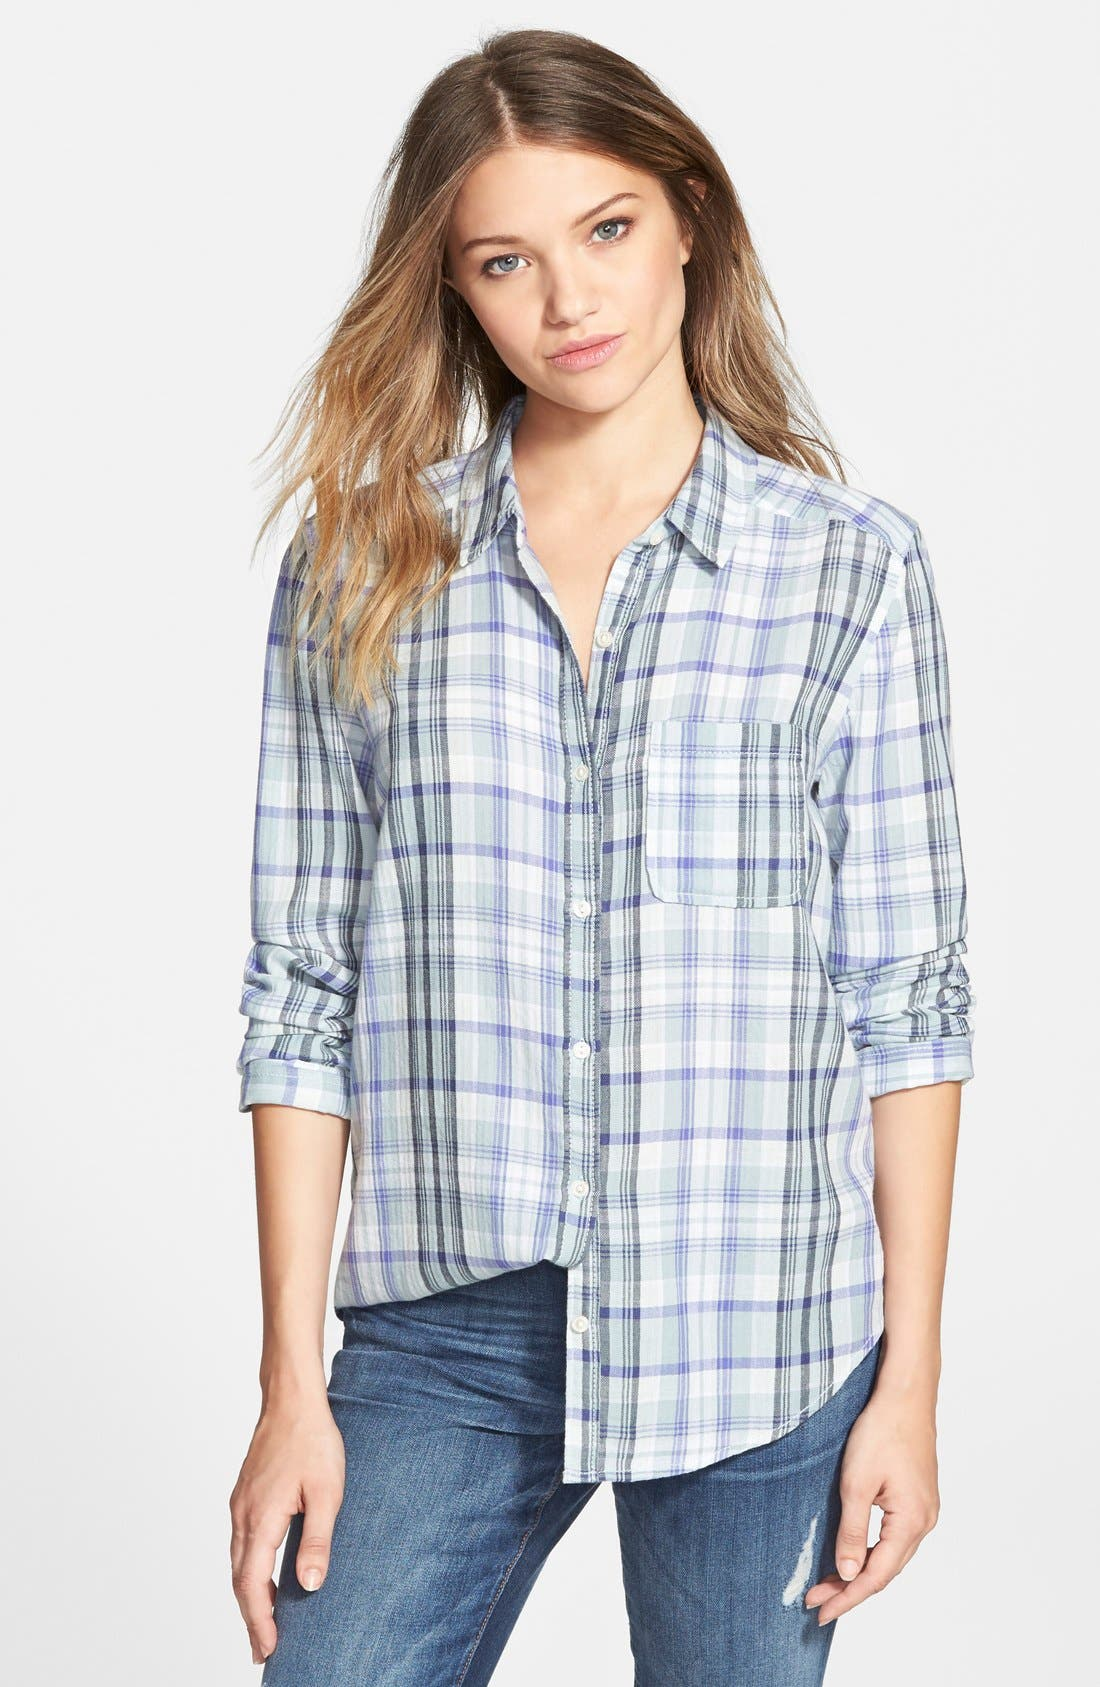 Alternate Image 1 Selected - BP. Plaid Shirt (Juniors)